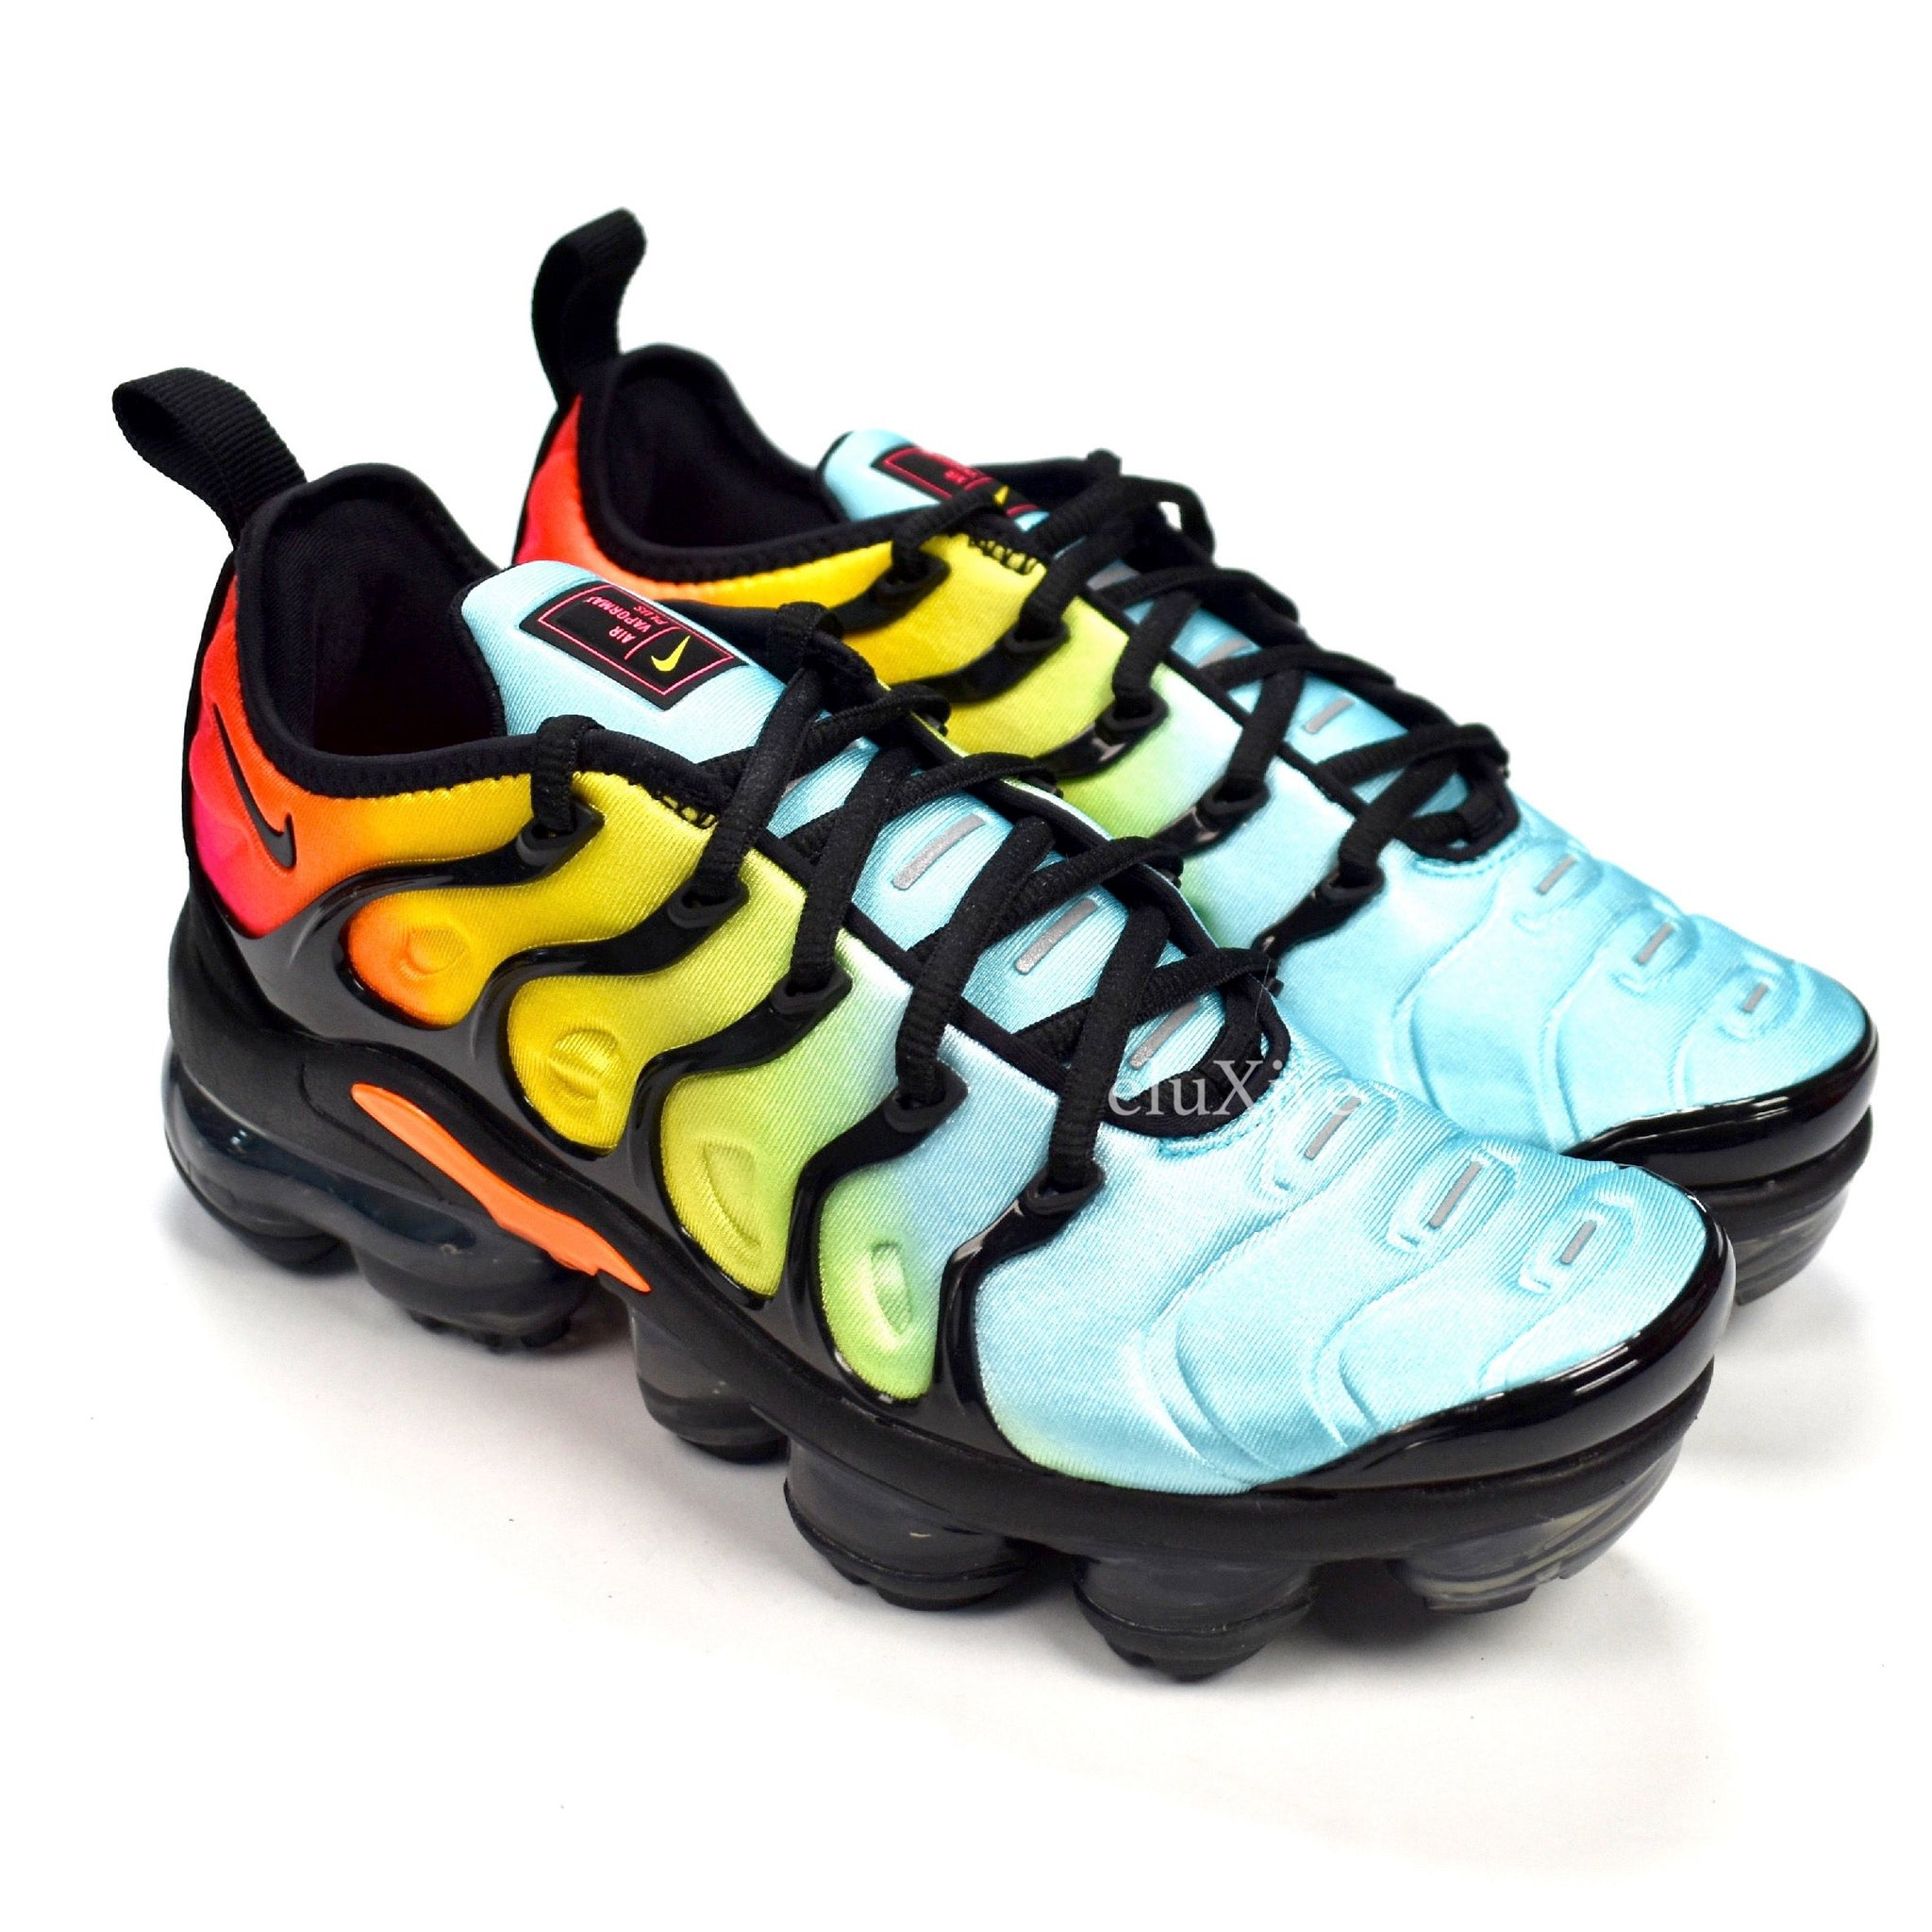 Nike - Women s Air Vapormax Plus Rainbow   Sunset Fade – eluXive 7f2e452d0